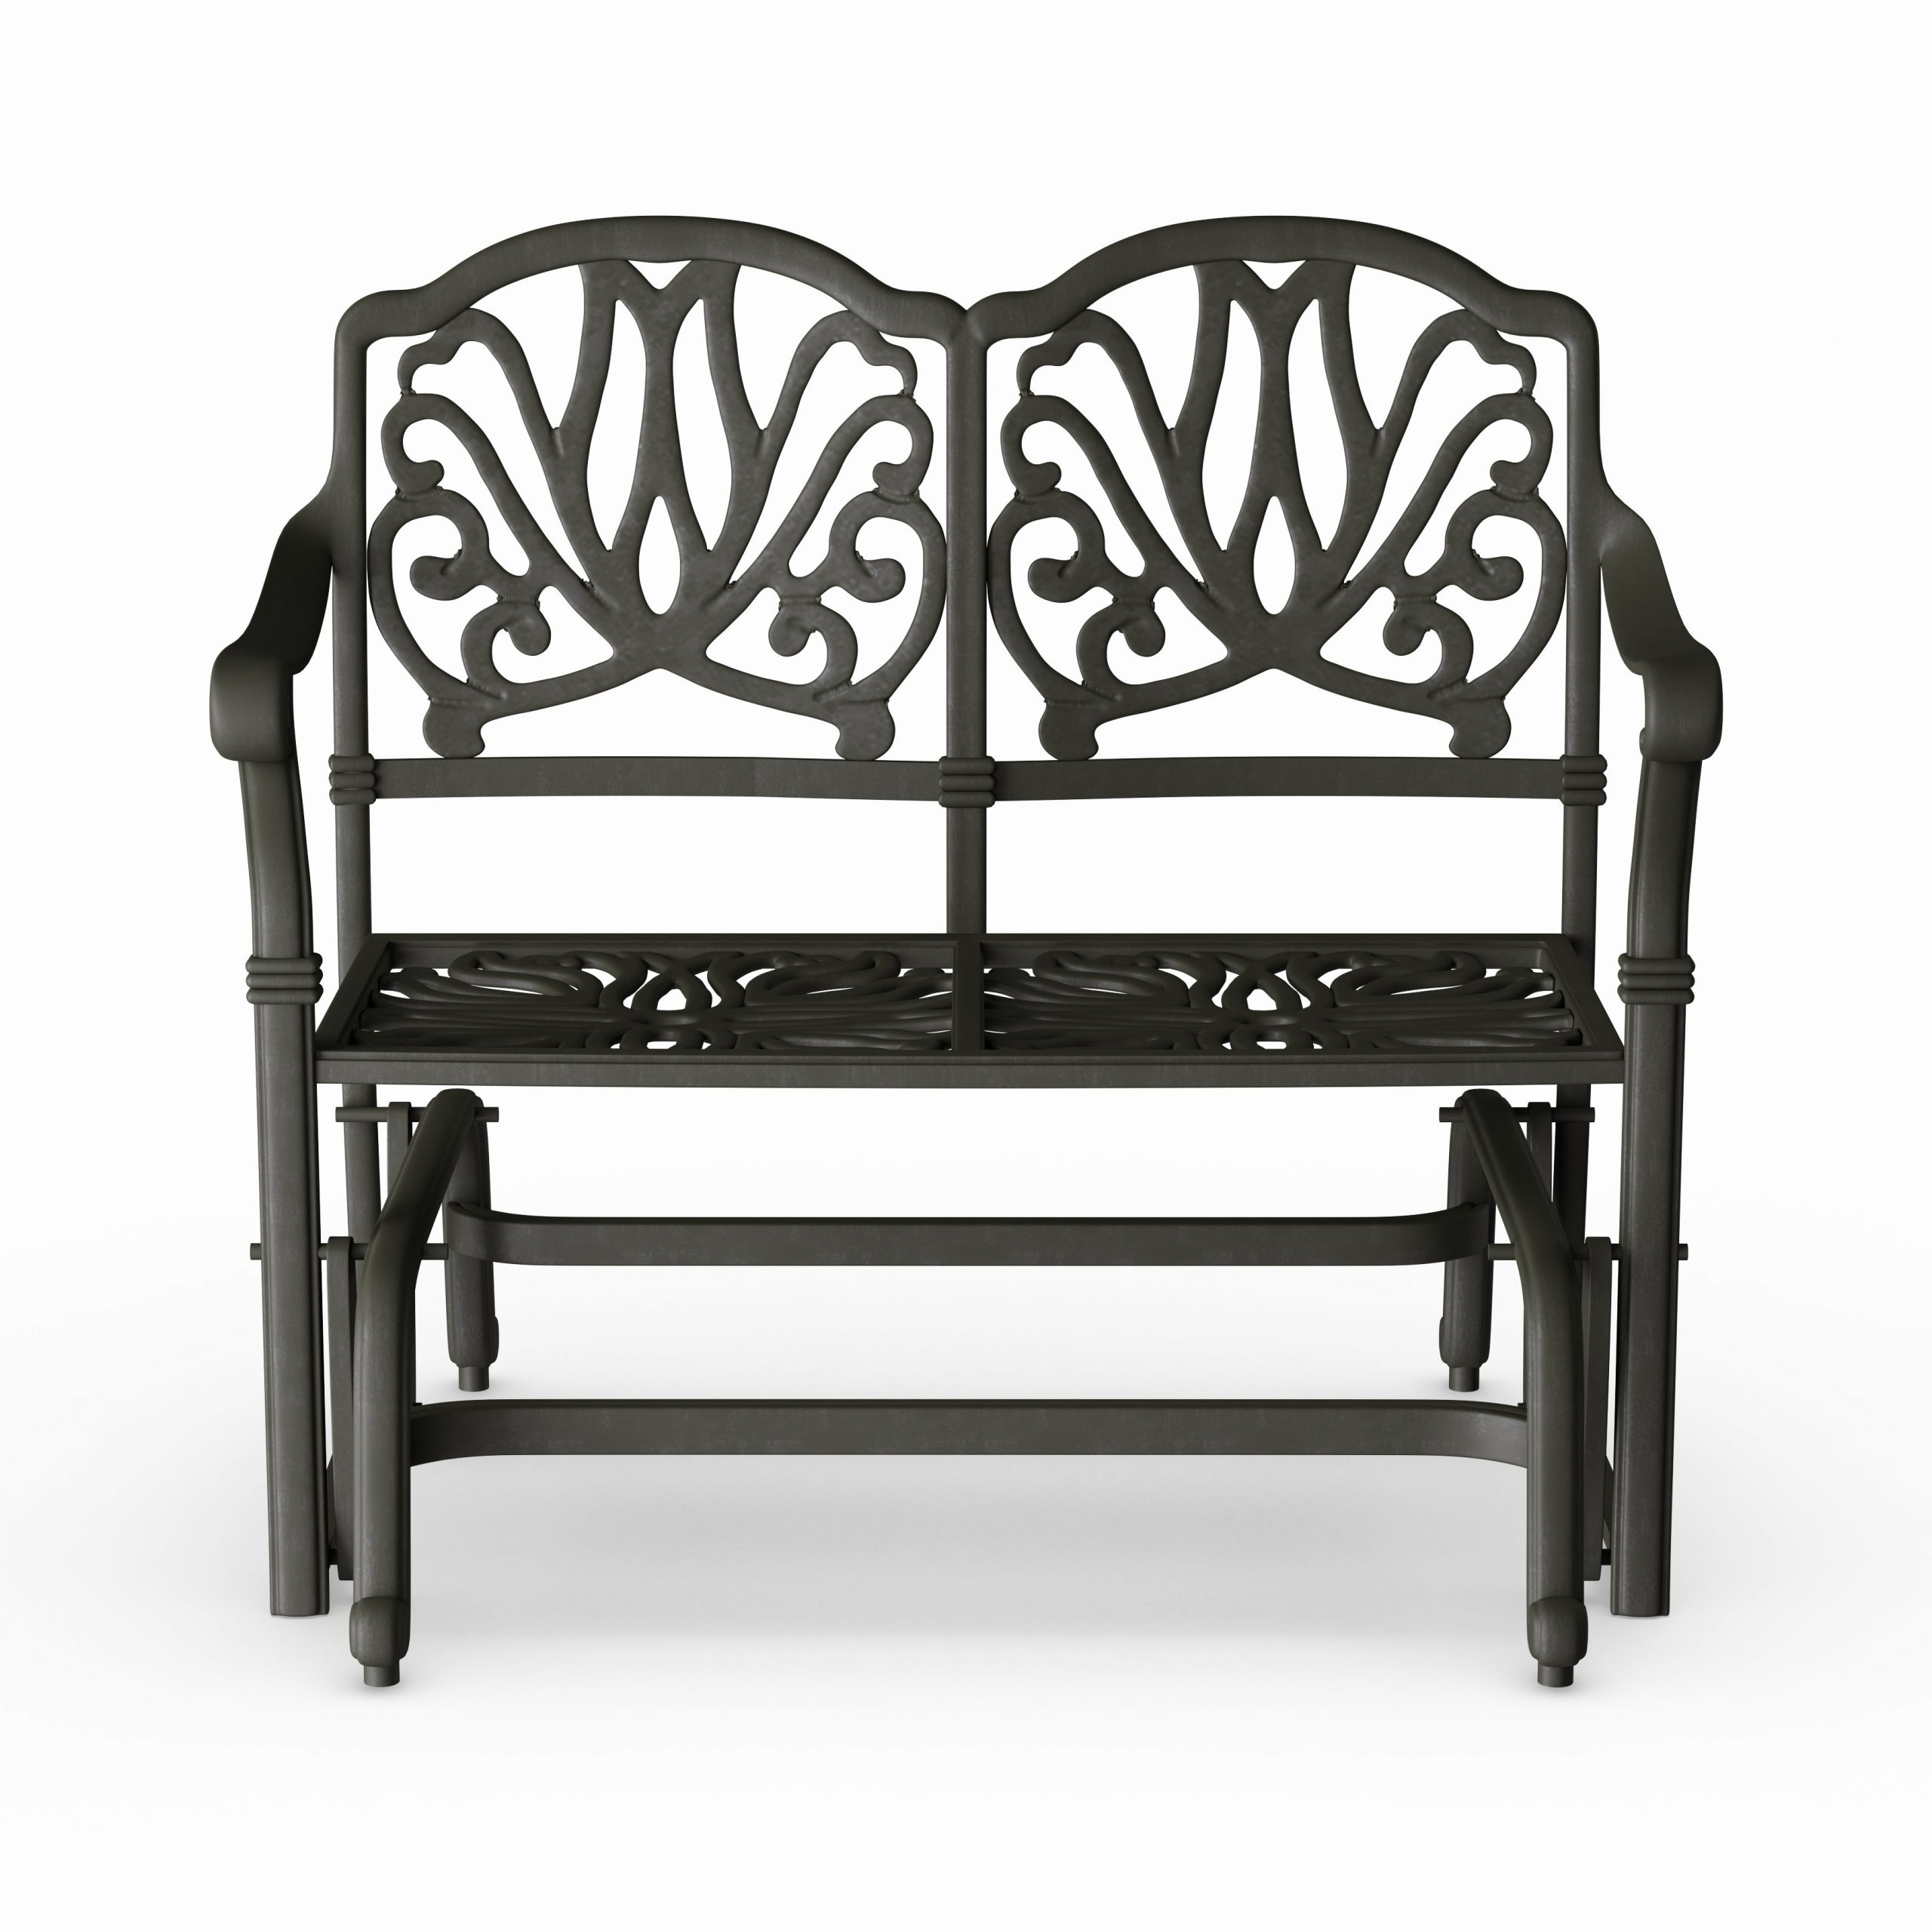 Newest Aluminum Glider Benches With Cushion Intended For Havenside Home Avalon Cast Aluminum Glider Bench With Seat Cushion (View 22 of 30)